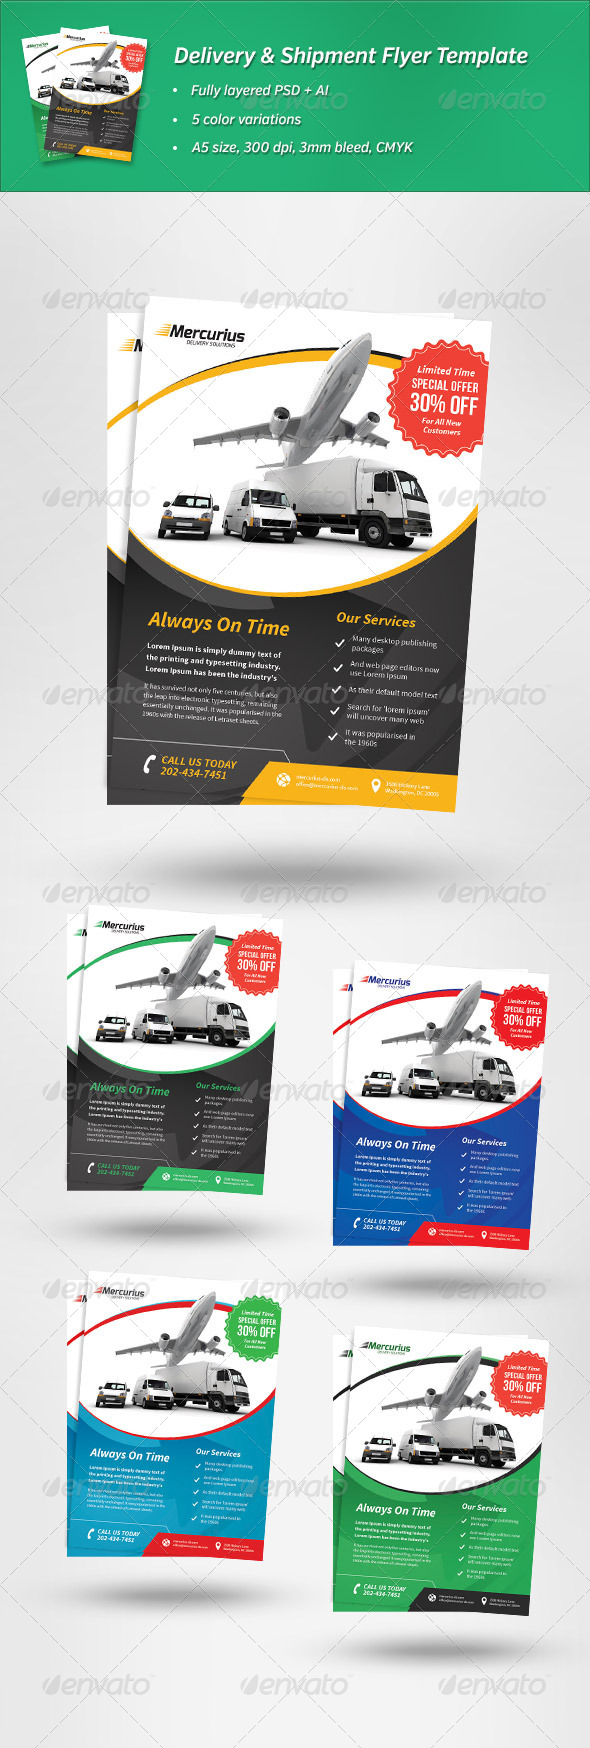 Delivery & Shipment Flyer Template - Corporate Flyers